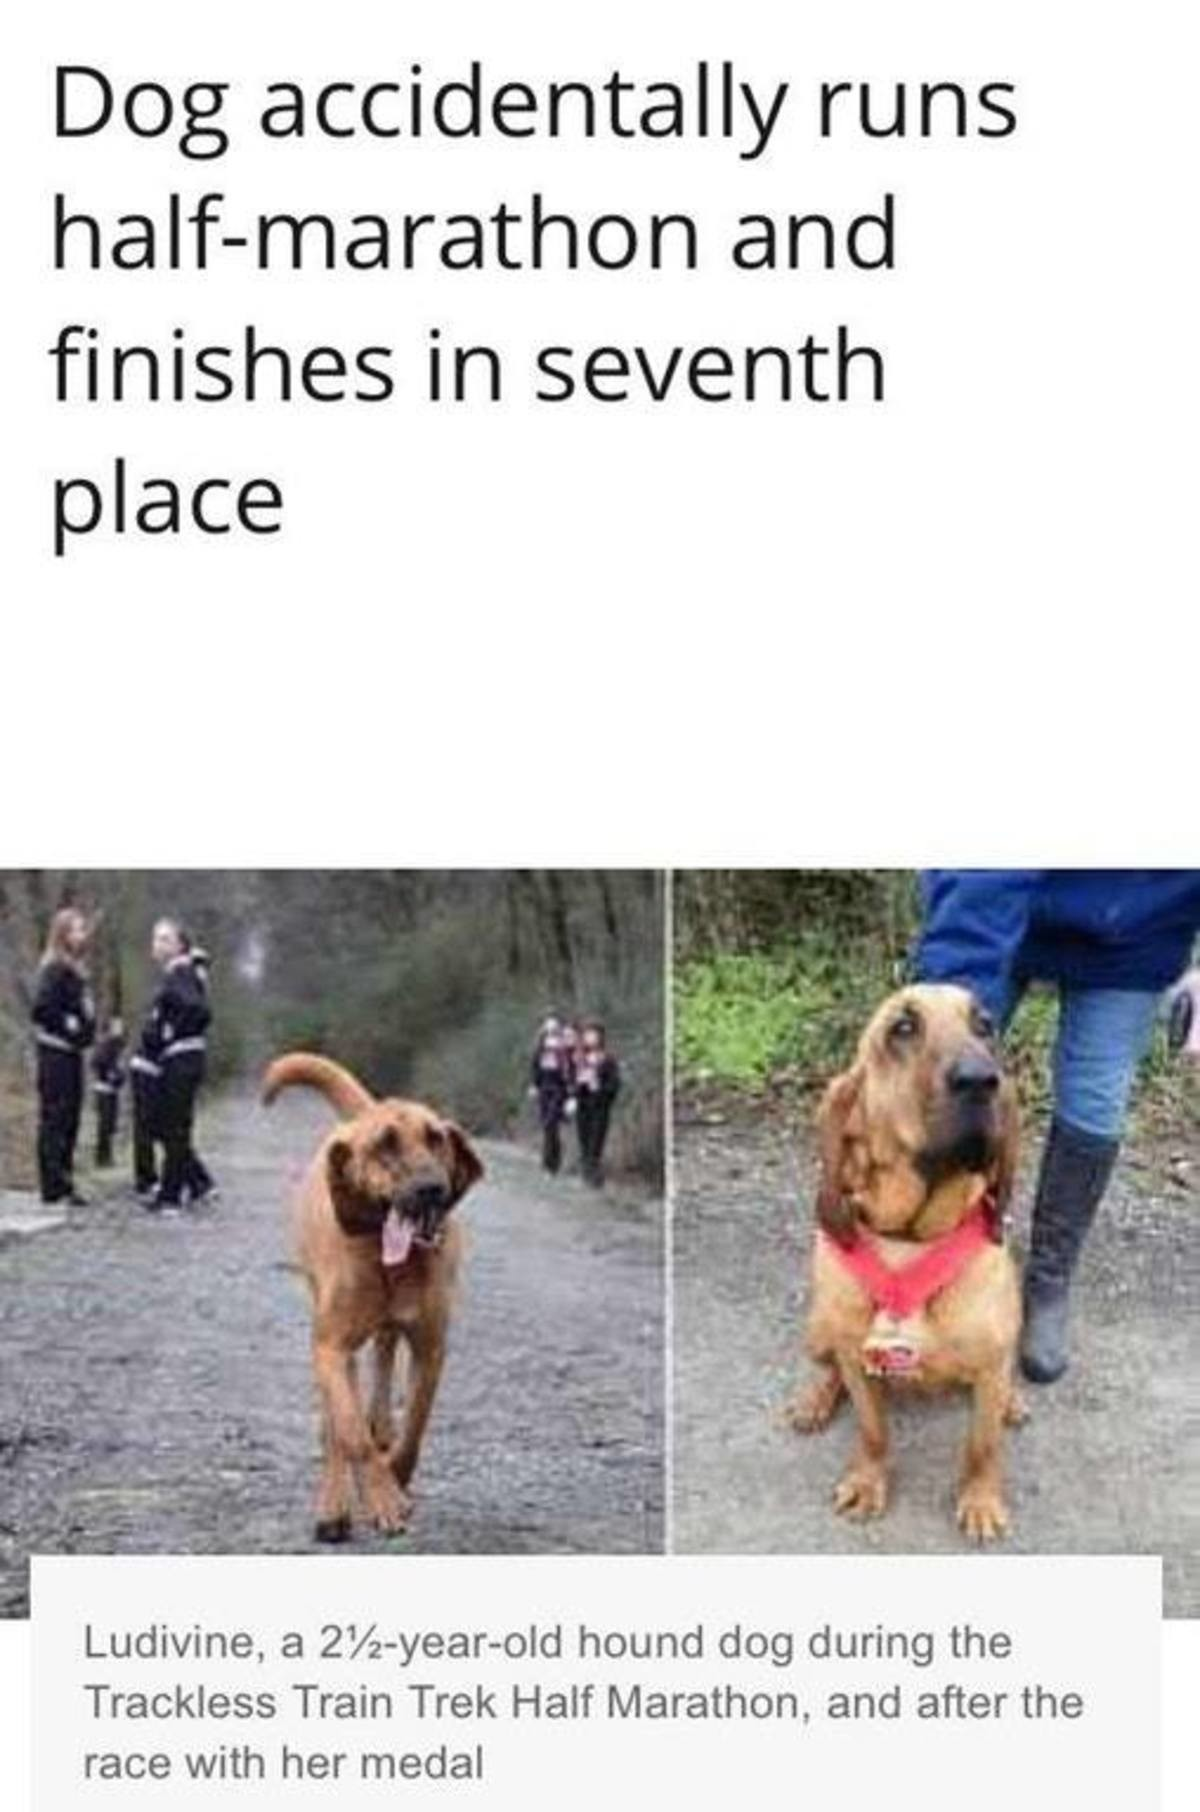 The best of boys. . Dog accidentally runs and finishes in seventh place a 2% -yearsold hound dog during the Trackless Train Trek Half Marathon, and after the ra